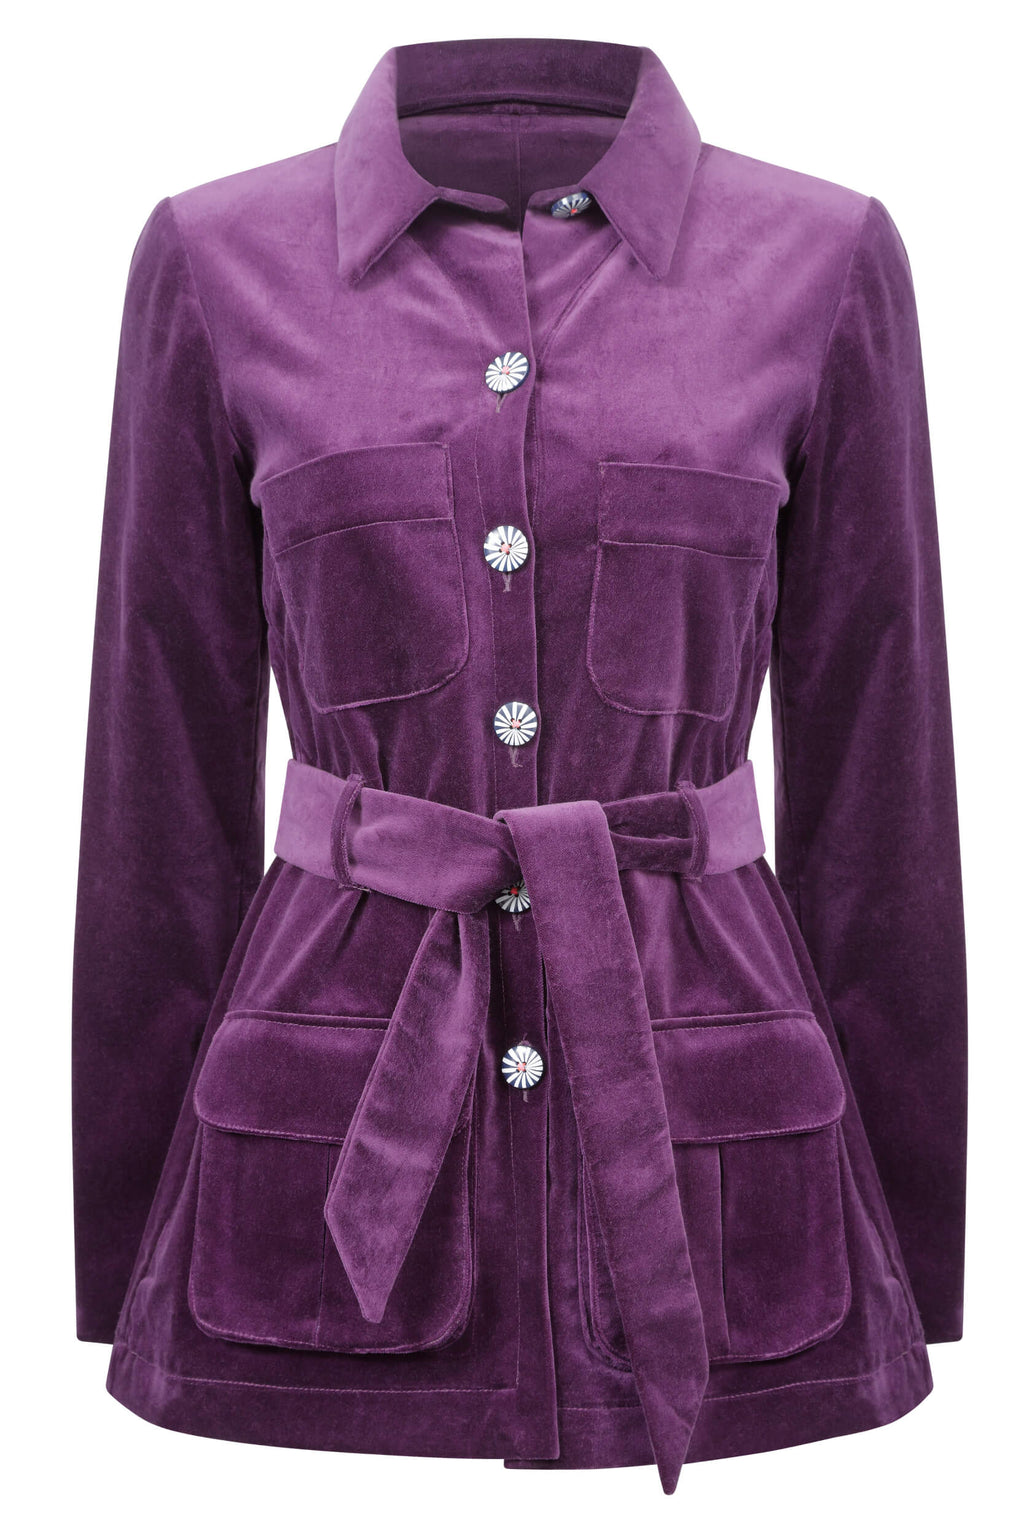 purple-velvet-safari-jacket-trouser-suit-womens